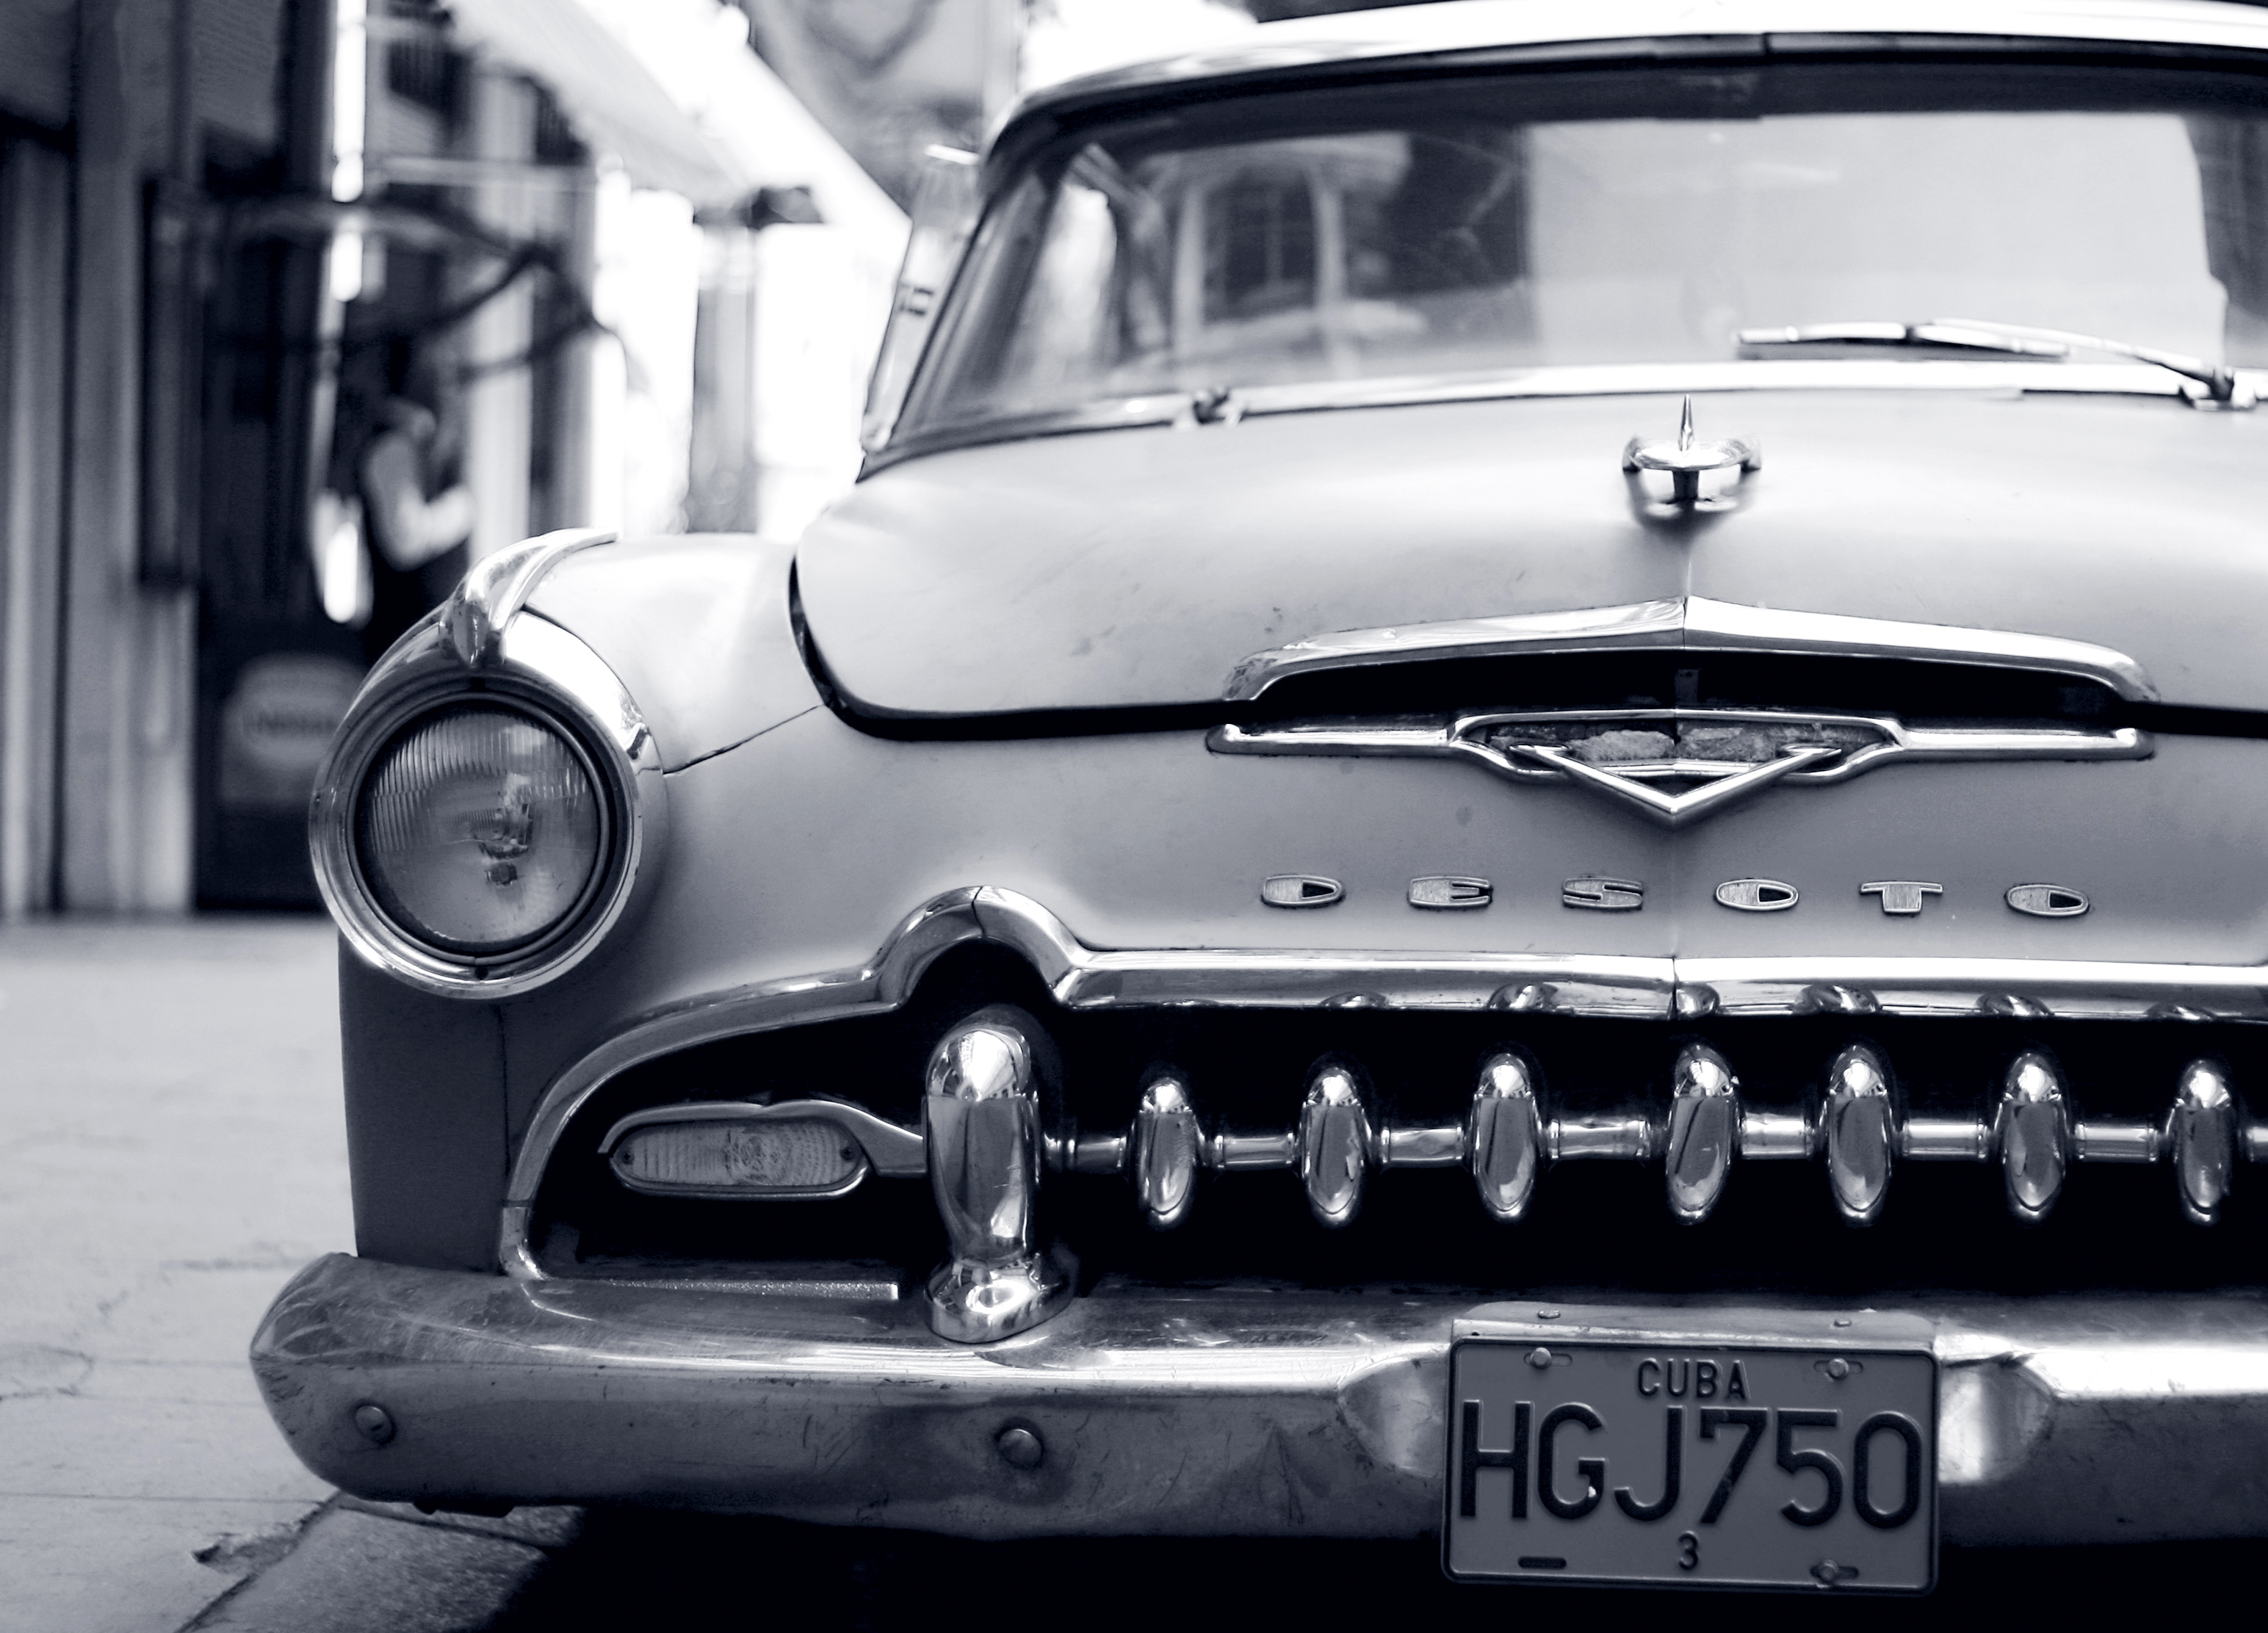 cuban 1950s cars